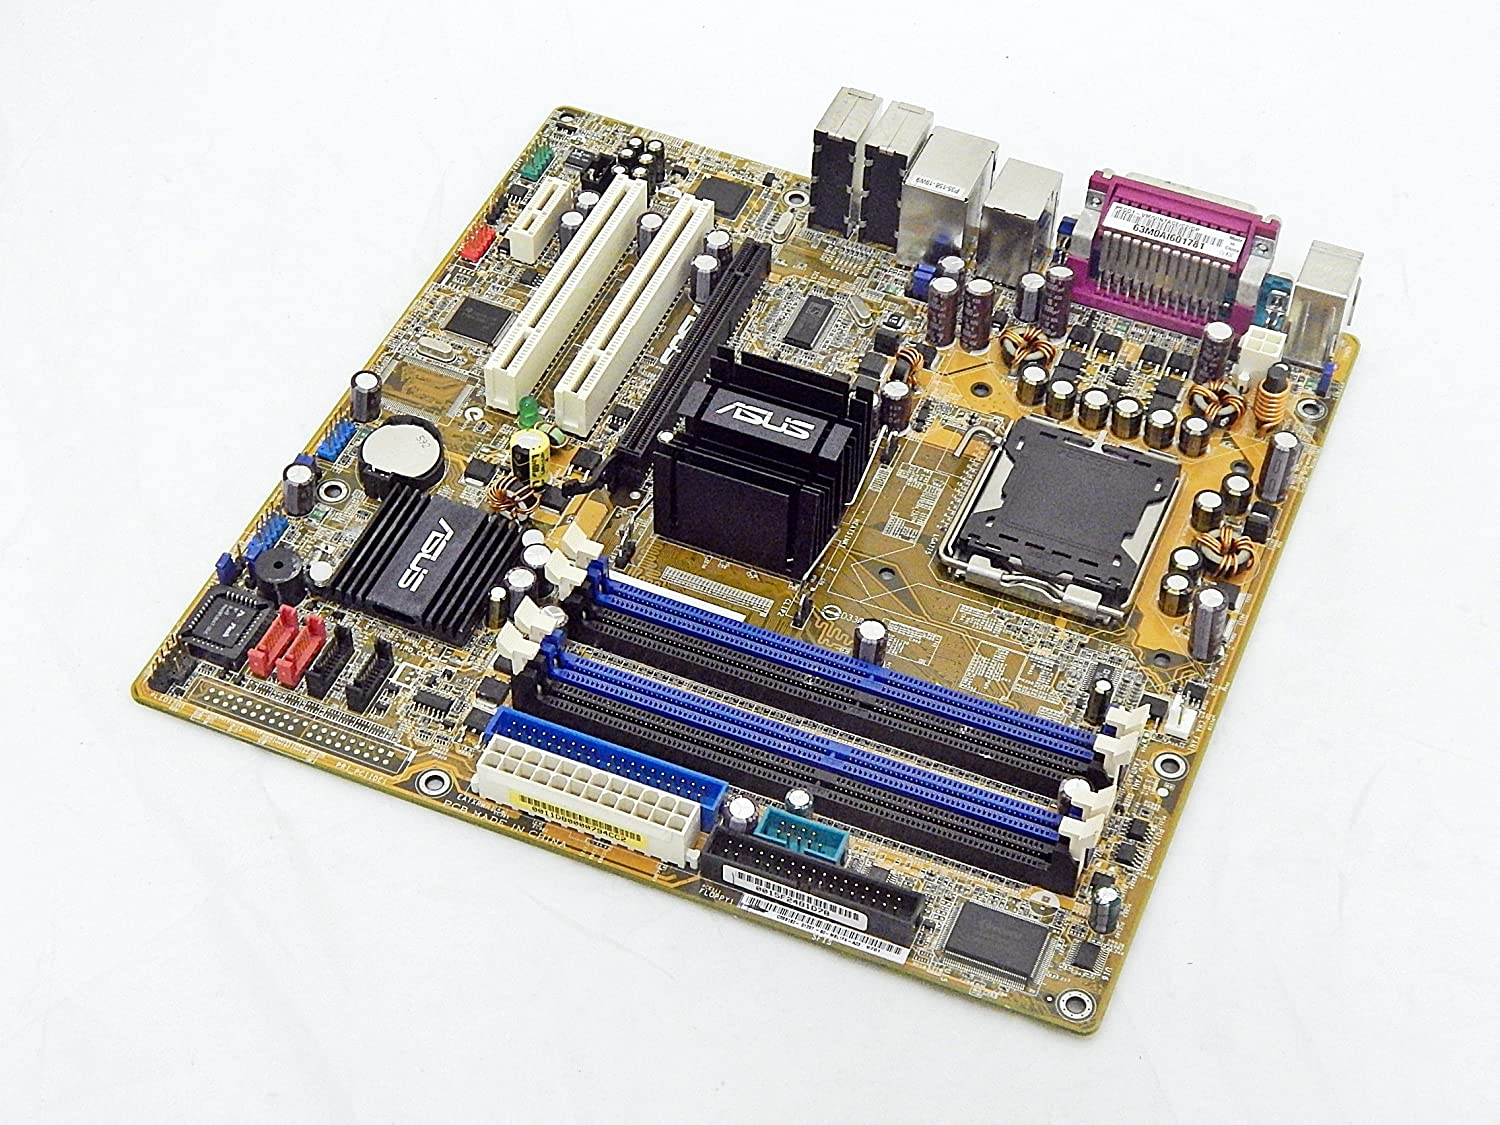 Asus P5gd1 Vm Intel 915g Lga775 Pentium 4 800mhz Fsb Motherboard Xtreme G41 Ddr3 Lga 775 Support Ddr Micro Atx With Onboard Video 8ch Audio Lan Only